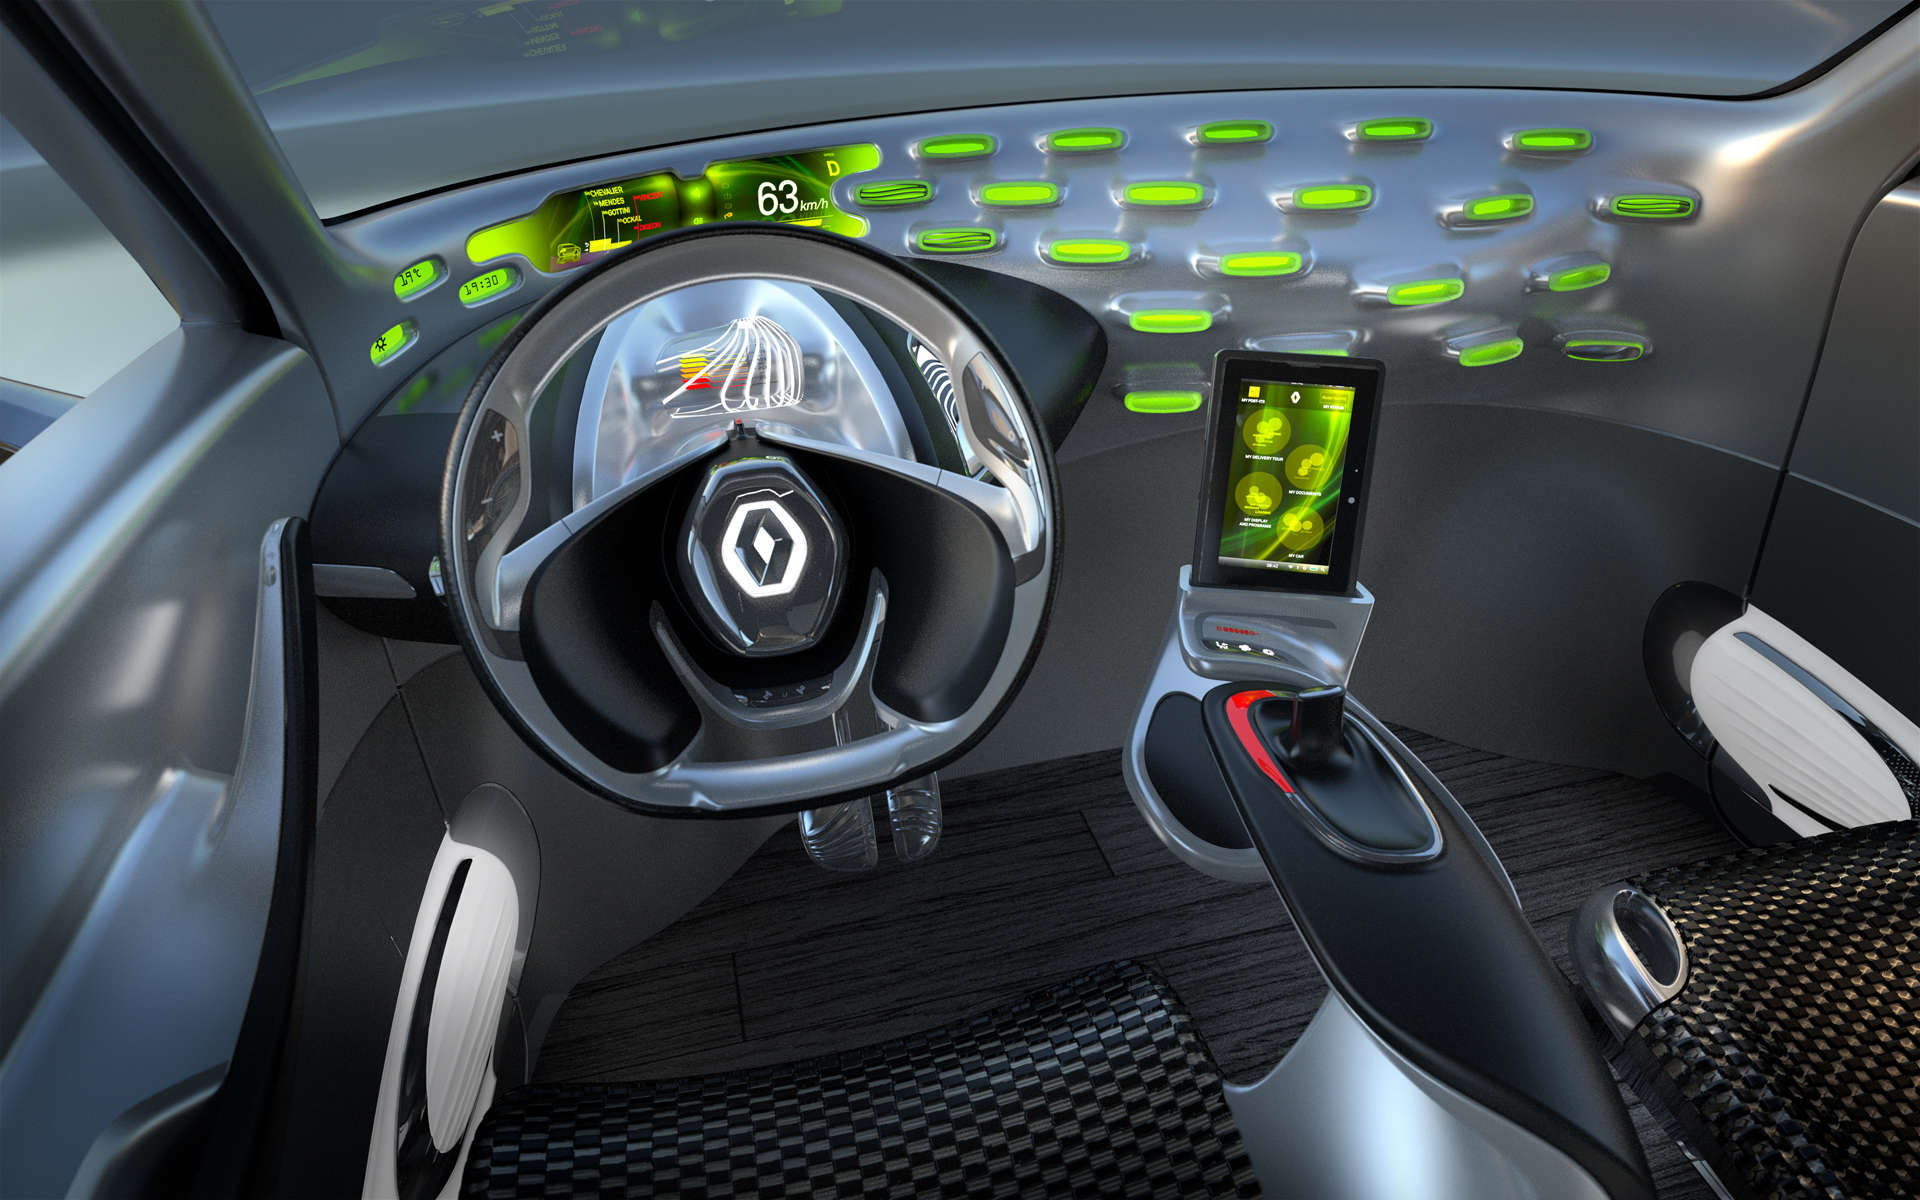 Renault Frenzy Cockpit View Klimafreundliche Autos helfen Steuern sparen